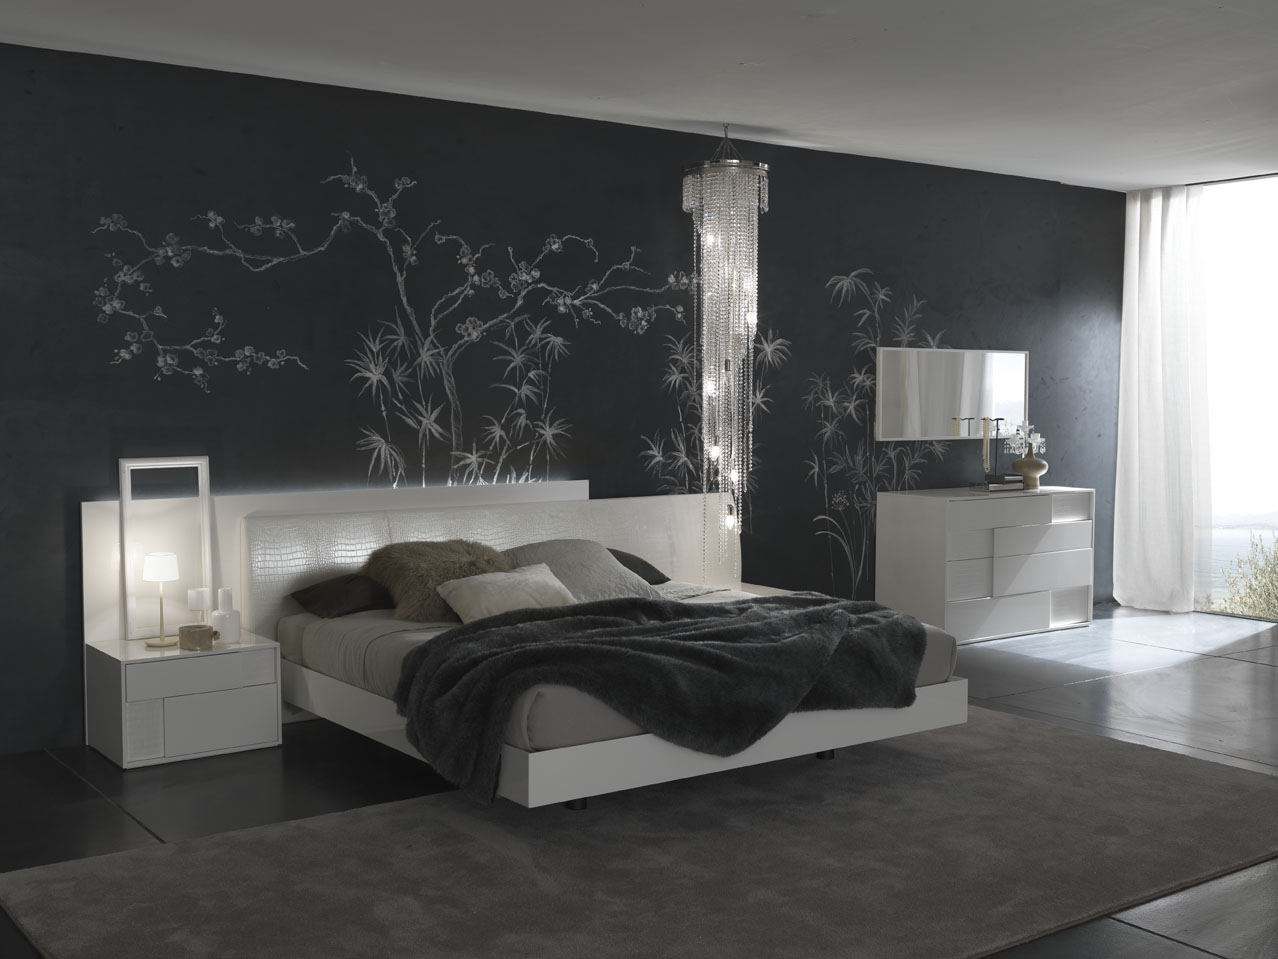 Bedroom ideas decorating - Contemporary Bedroom Furniture